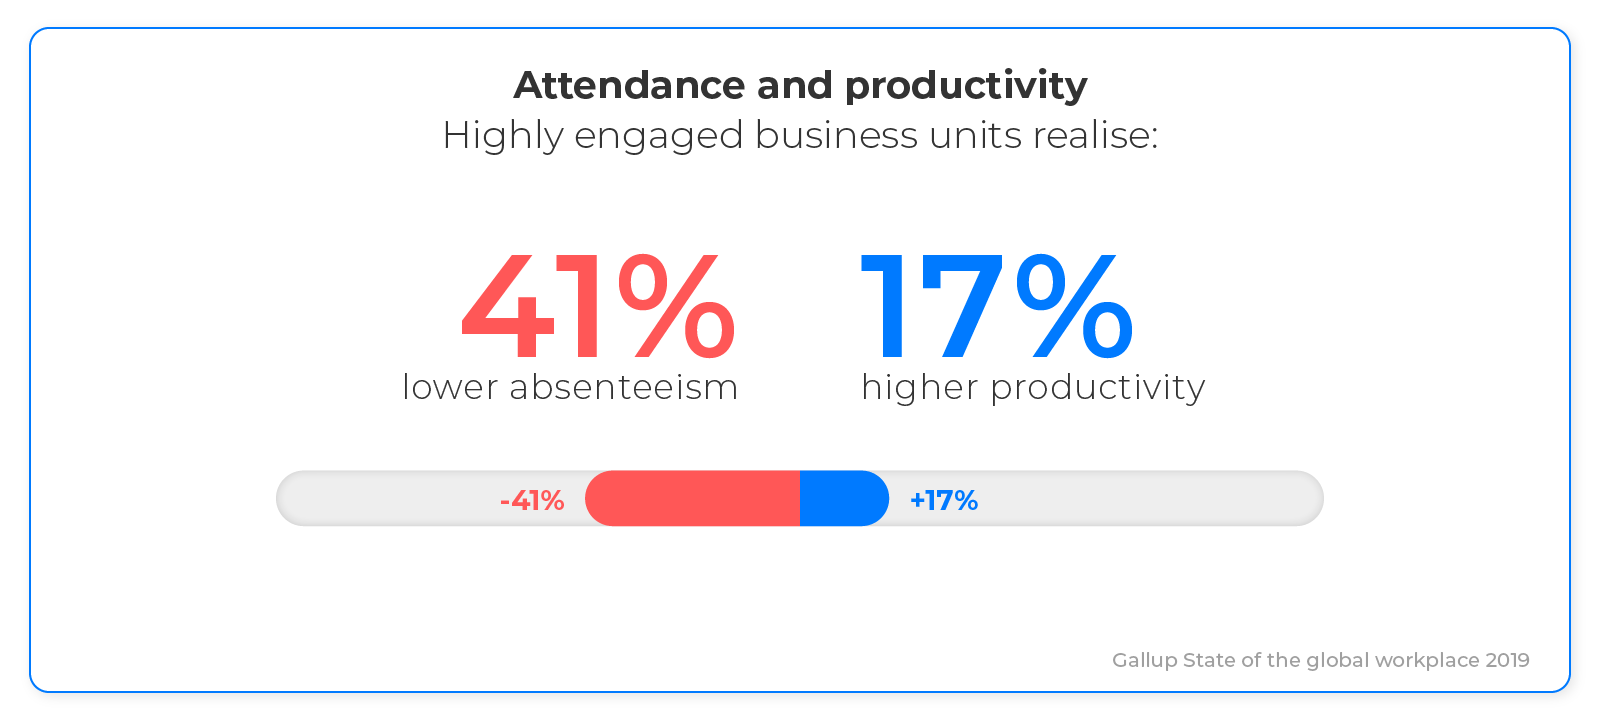 Attendance and productivity